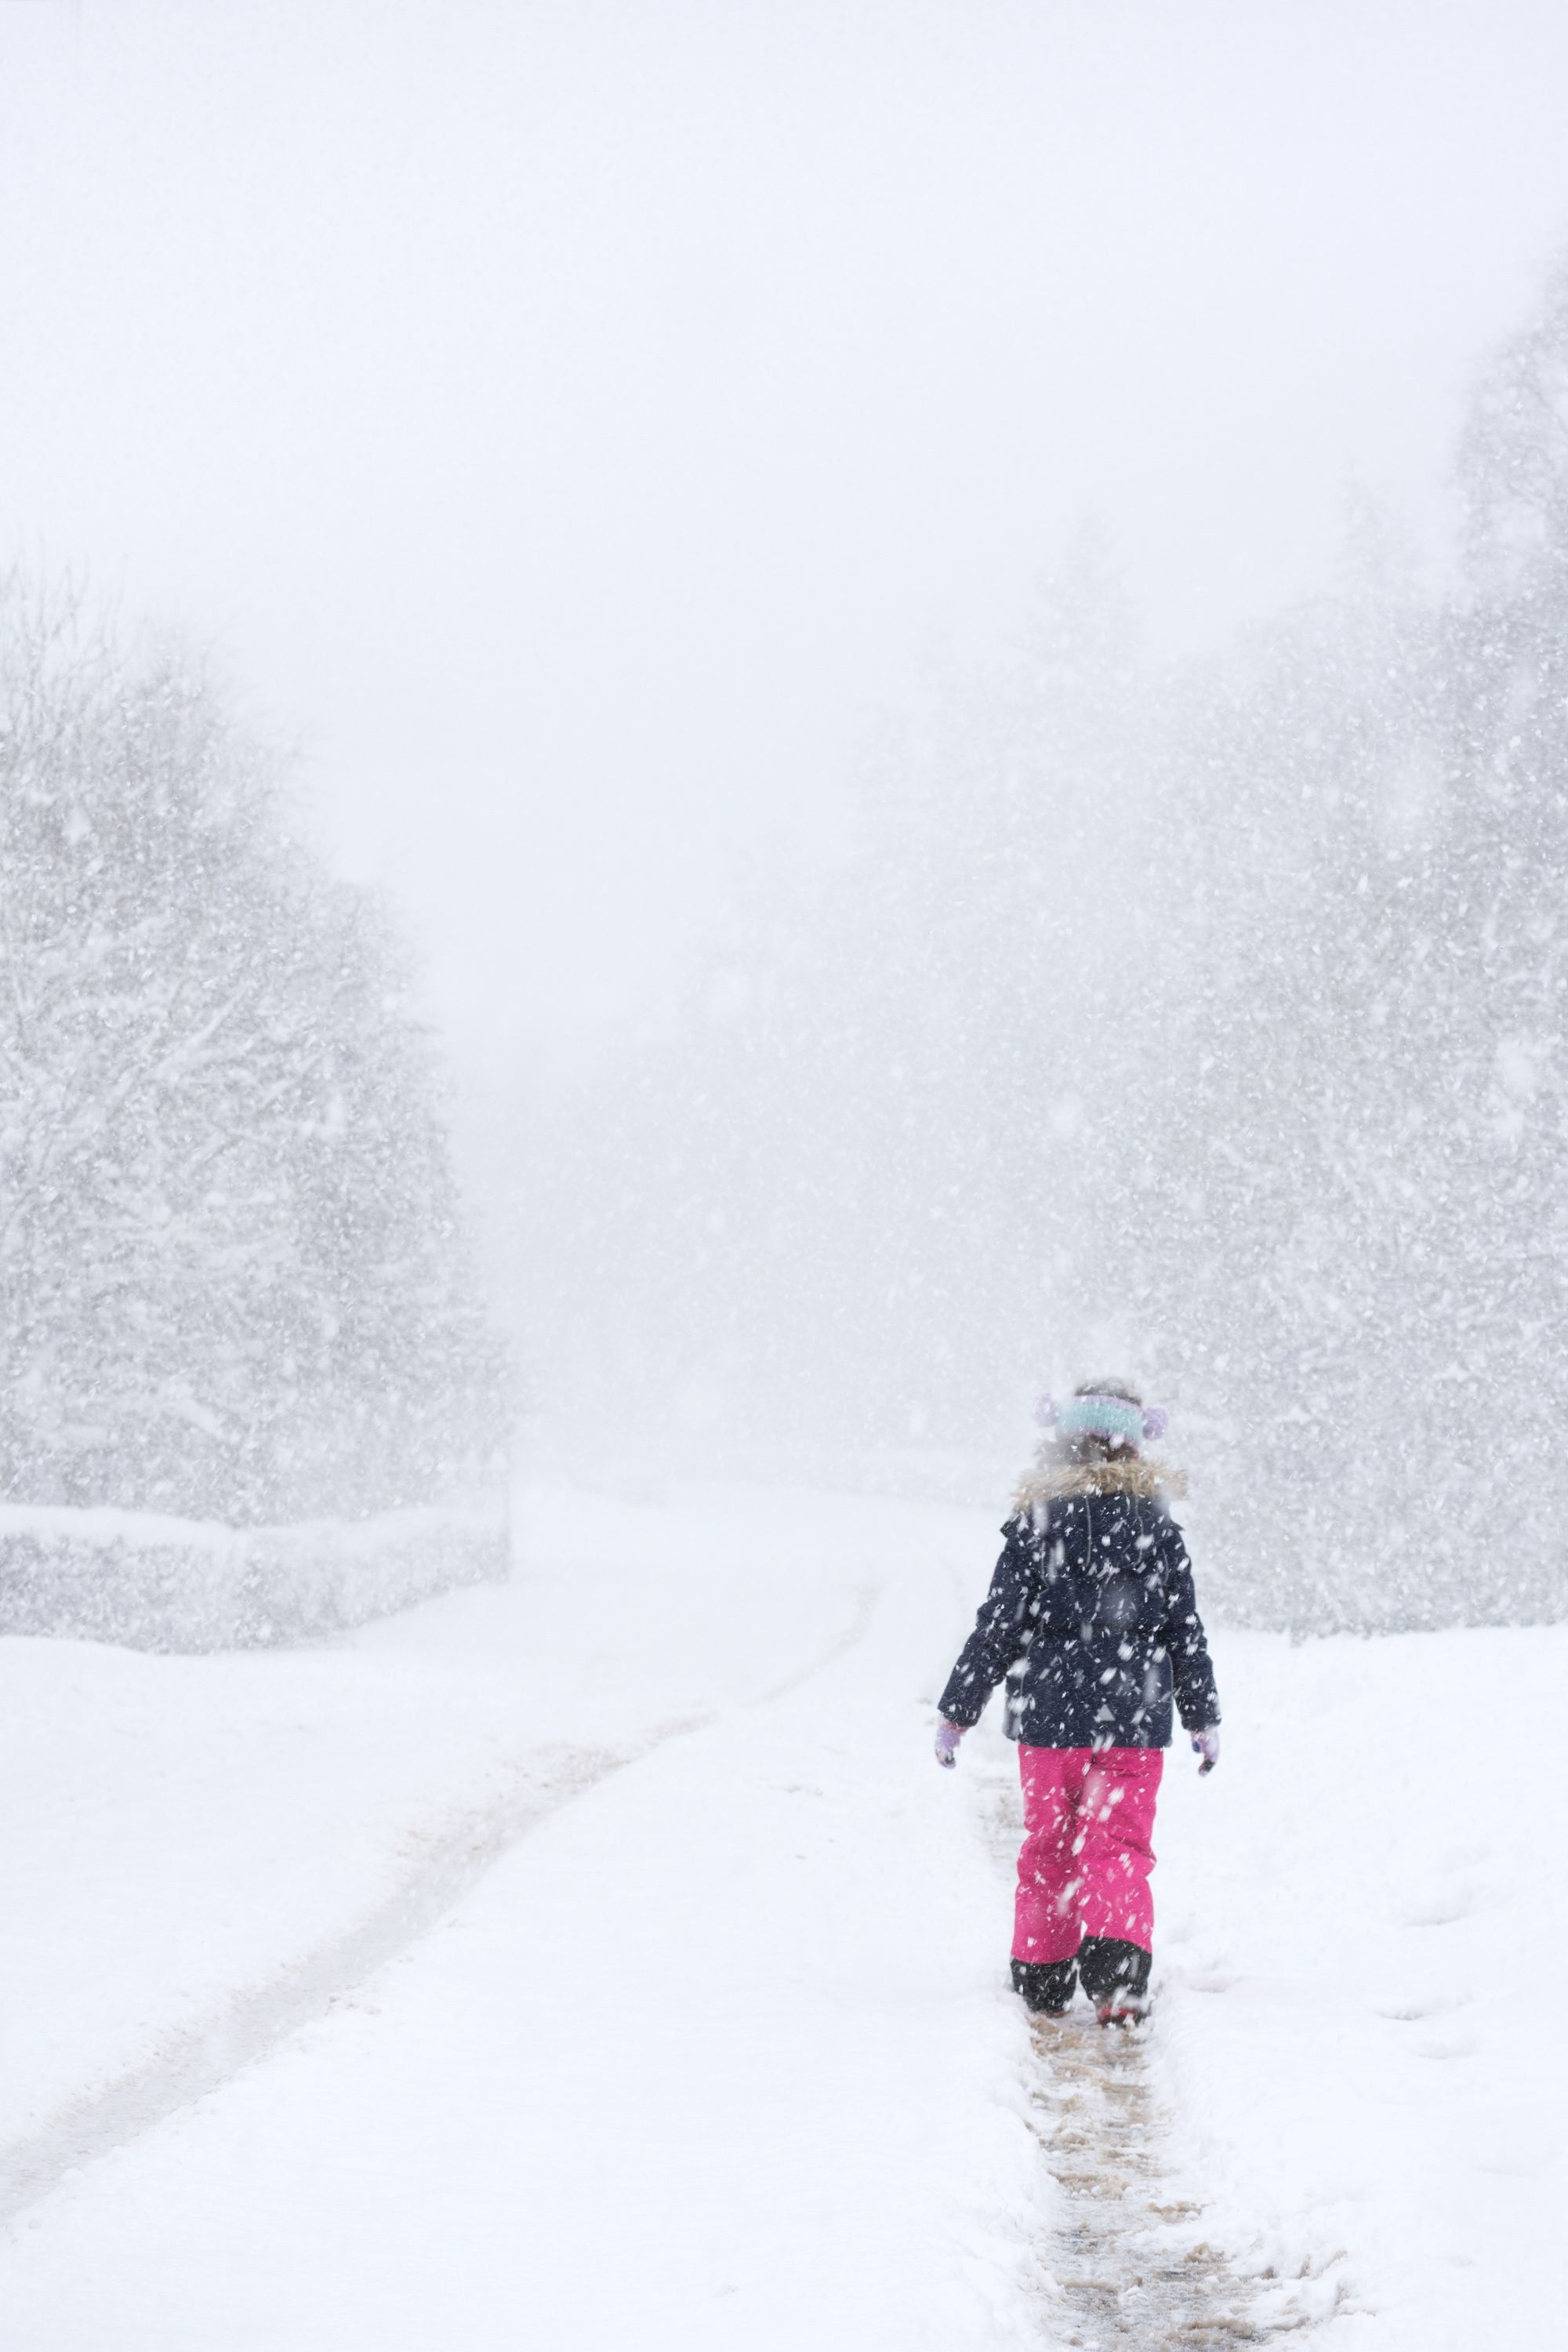 Snow Activities in the Cairngorms National Park